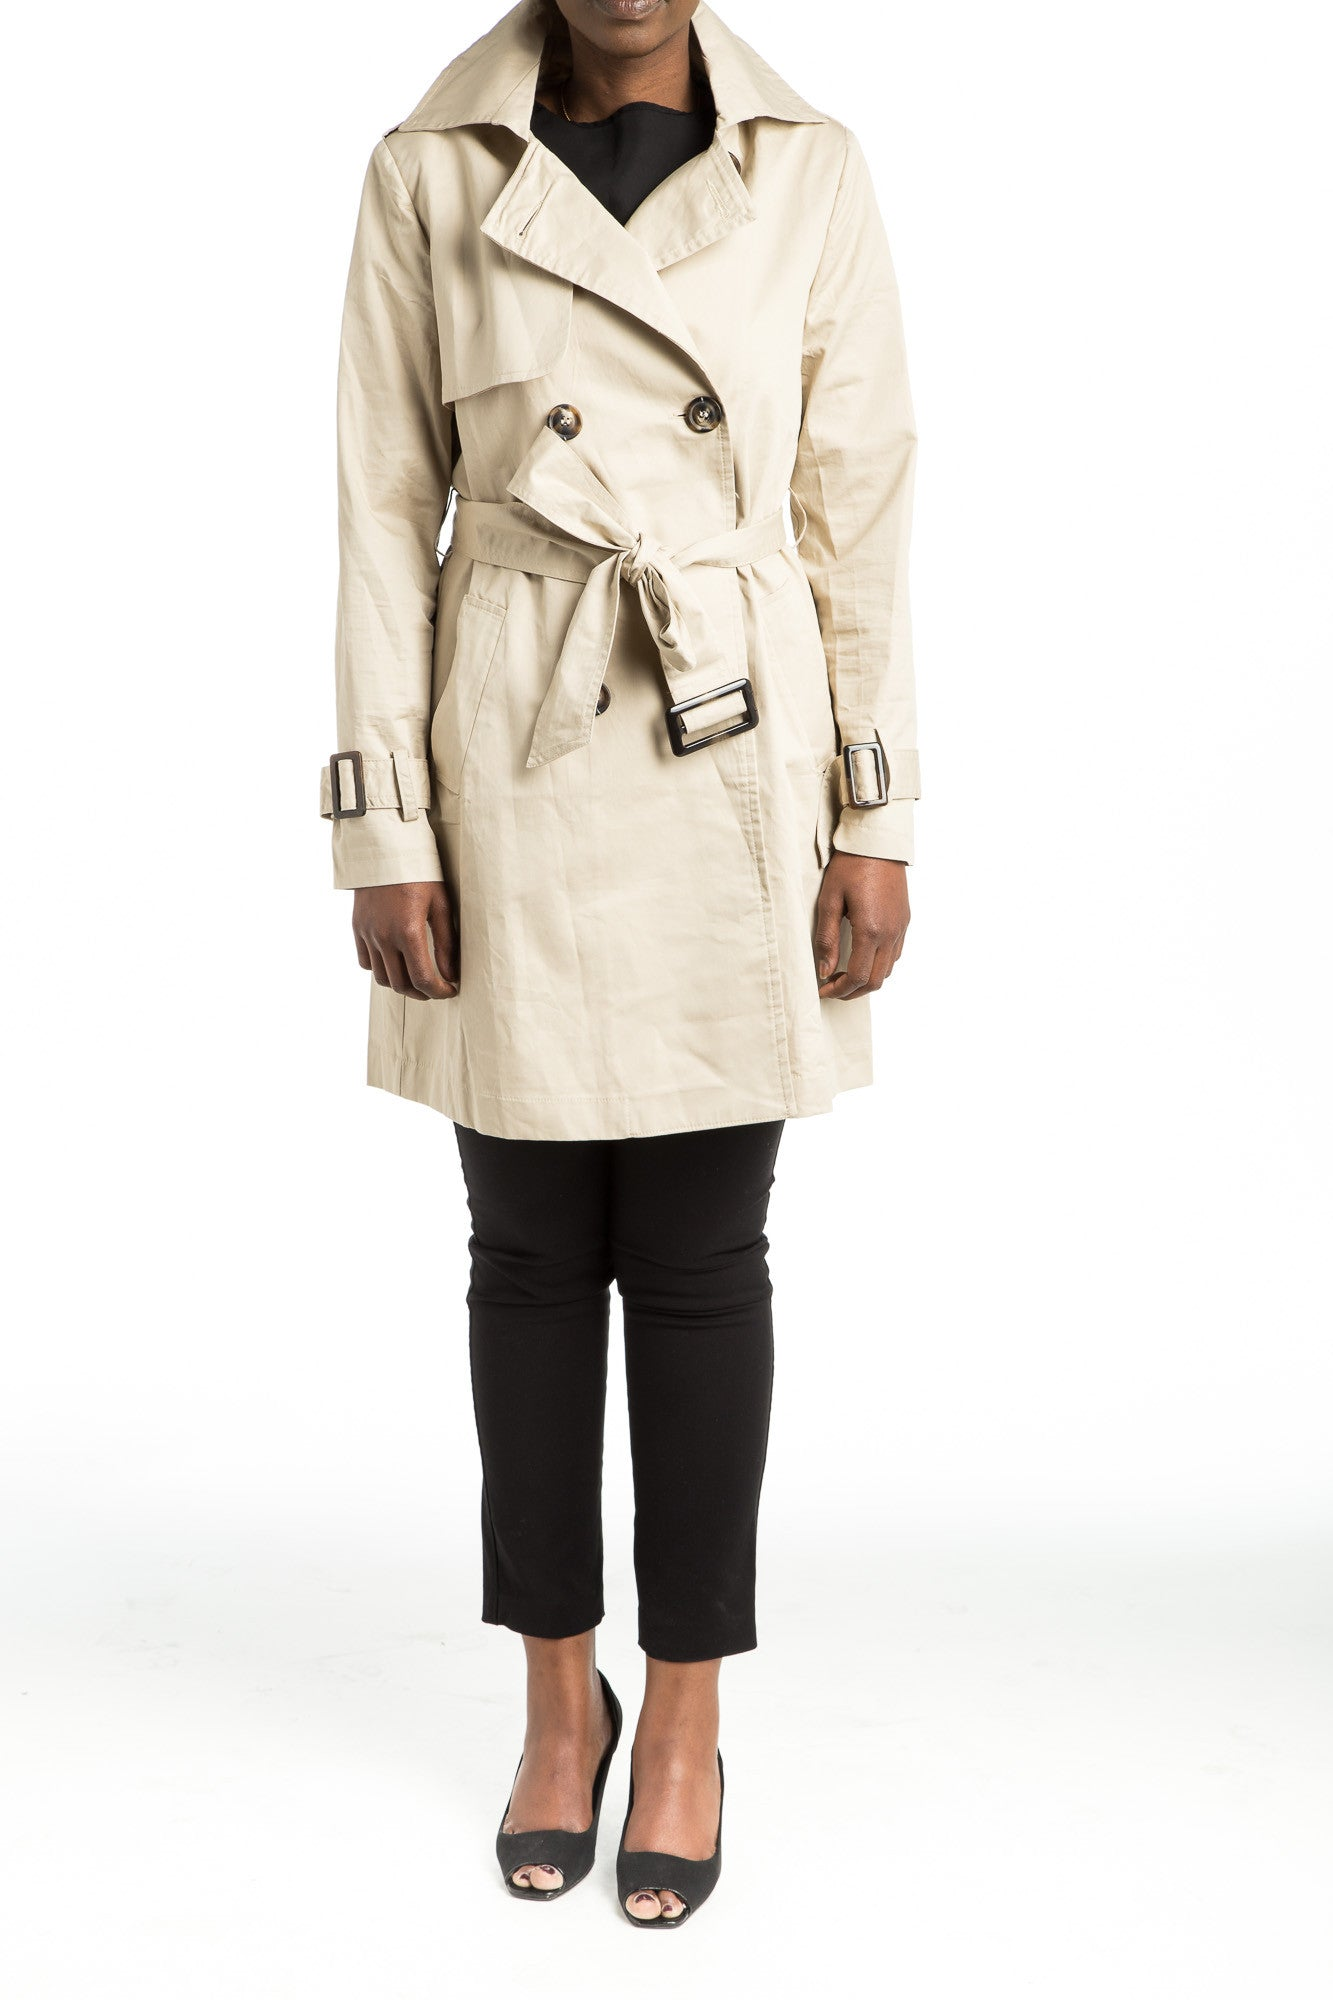 SHERA Trench Coat - 2 colors available - Mademoiselle Veste - 3